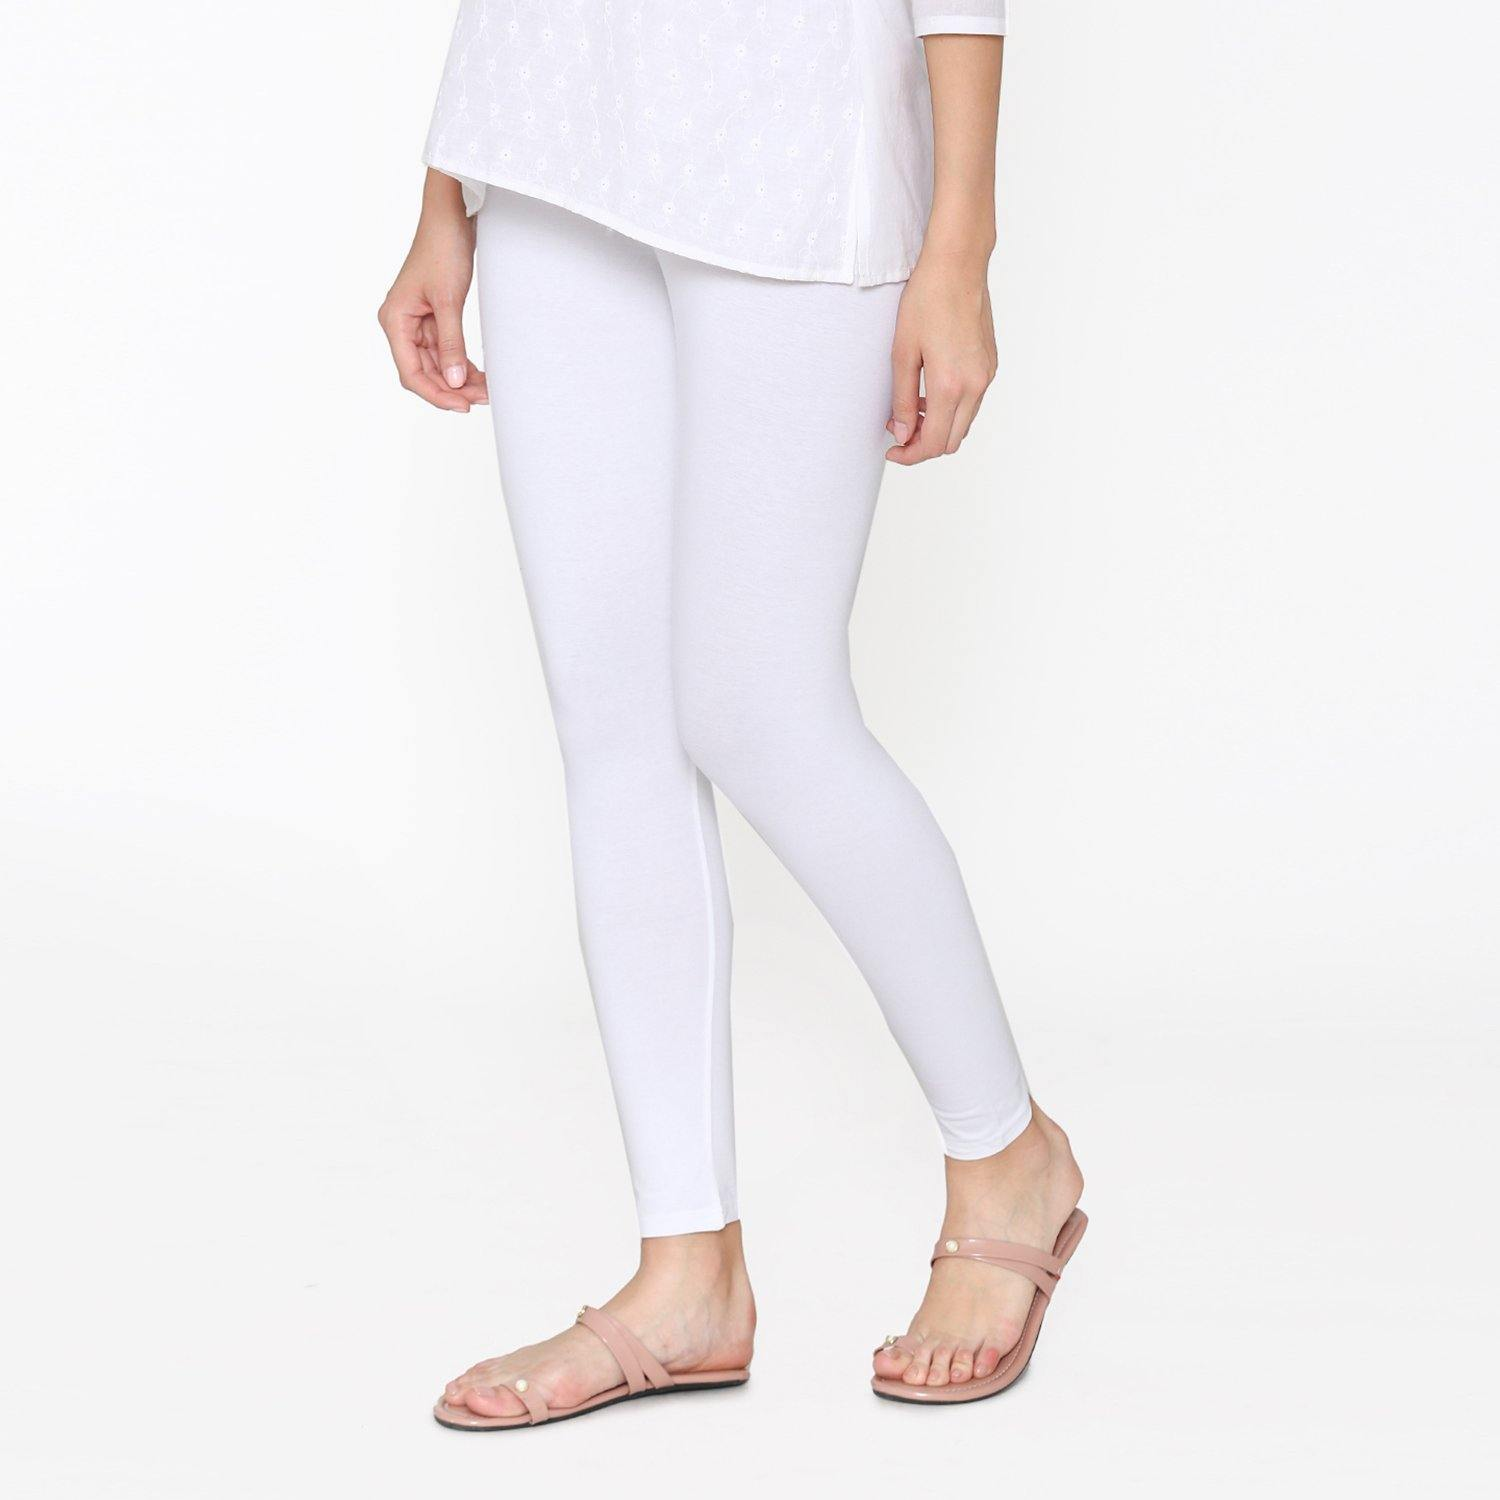 White Color Ankle Leggings